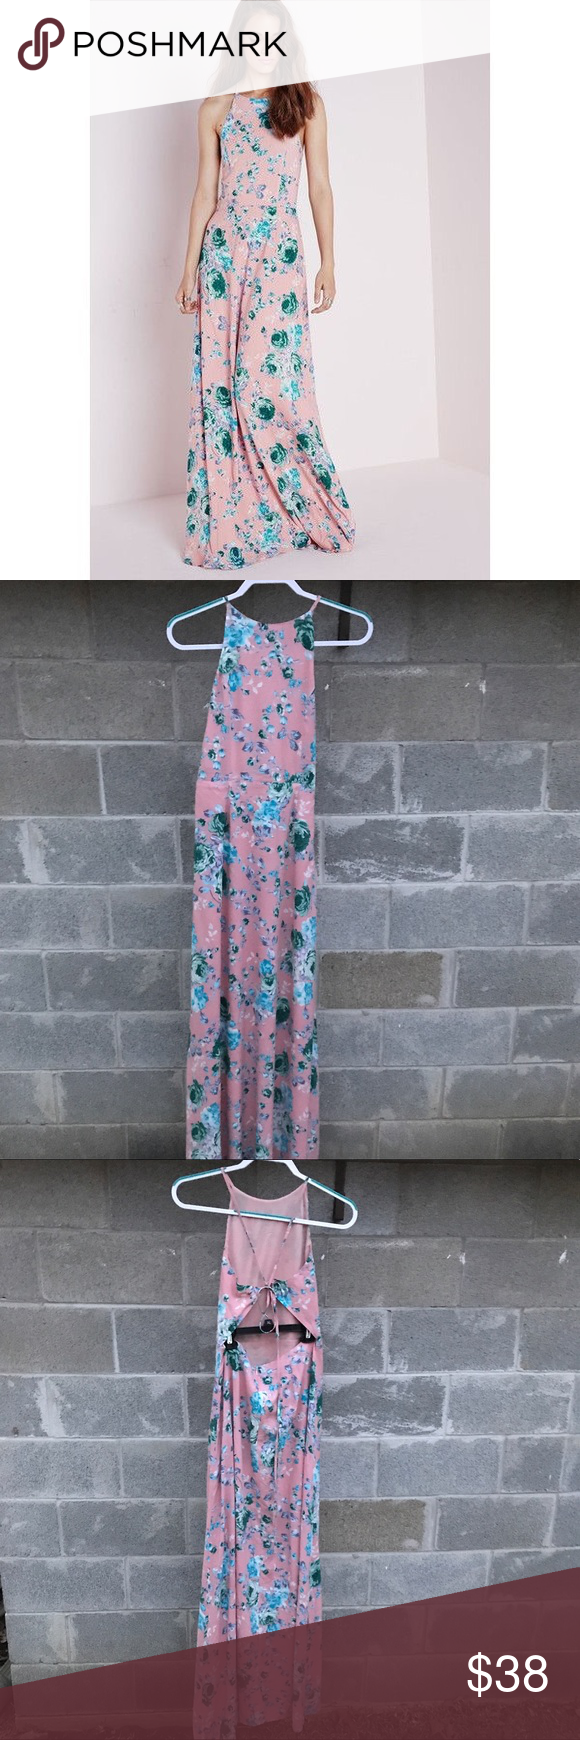 Missguided Peach Strappy Wedding Guest Maxi Dress Maxi Dress Maxi Dress Wedding Guest Dresses [ png ]